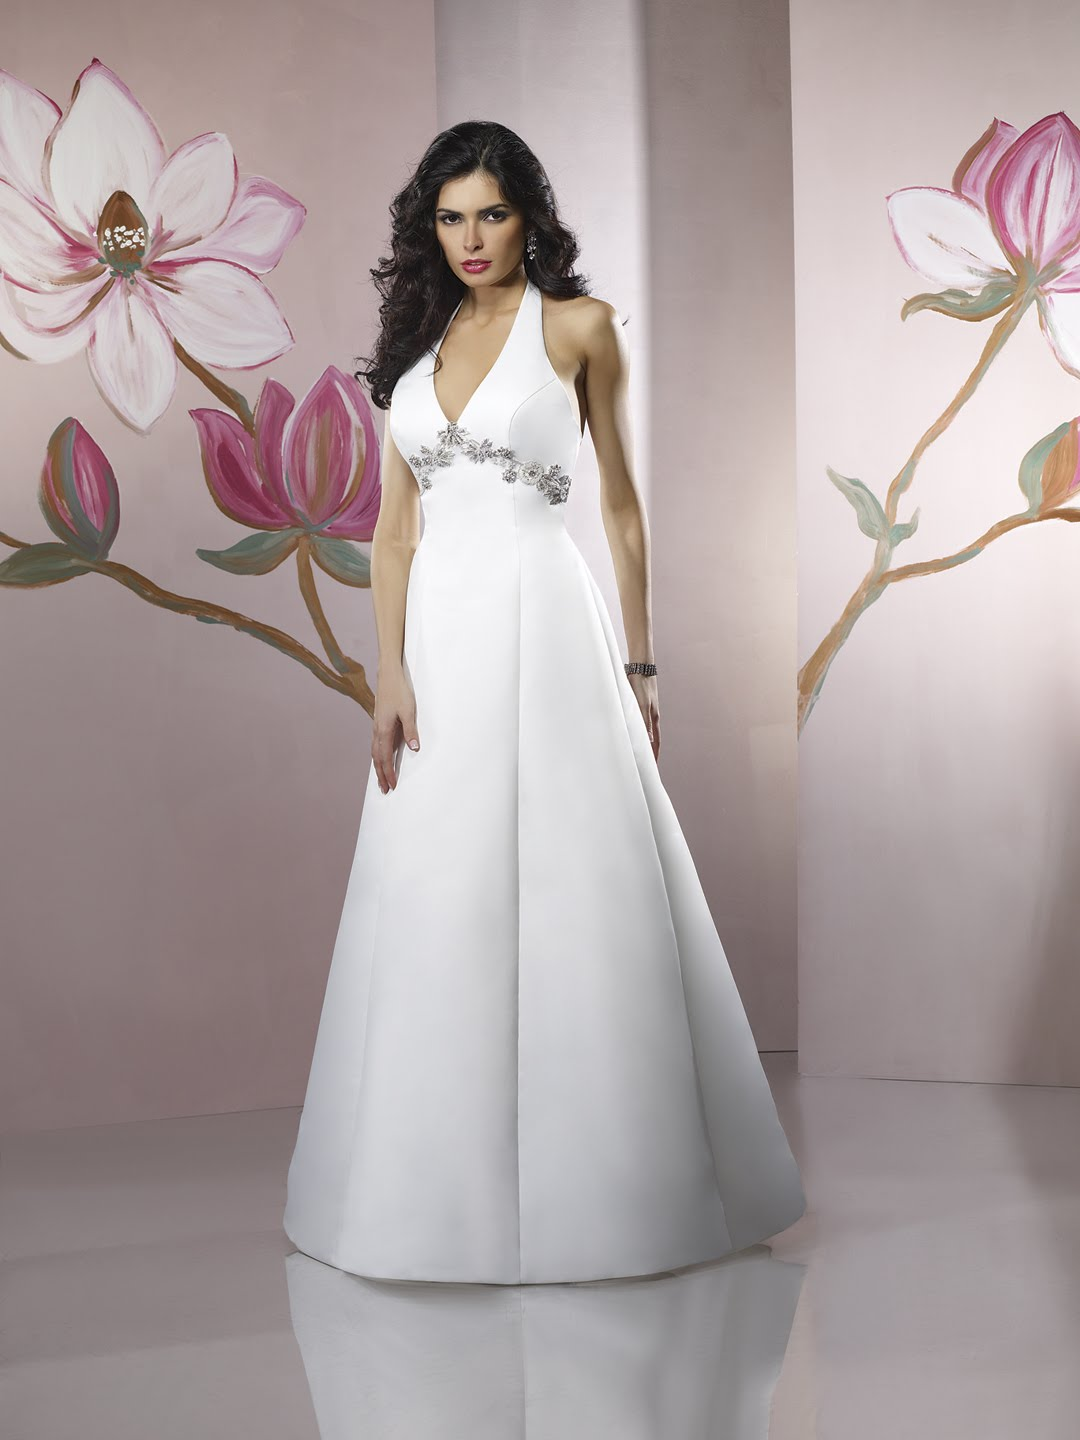 maryhelen 39 s blog wedding dresses uk grecian style lds wedding